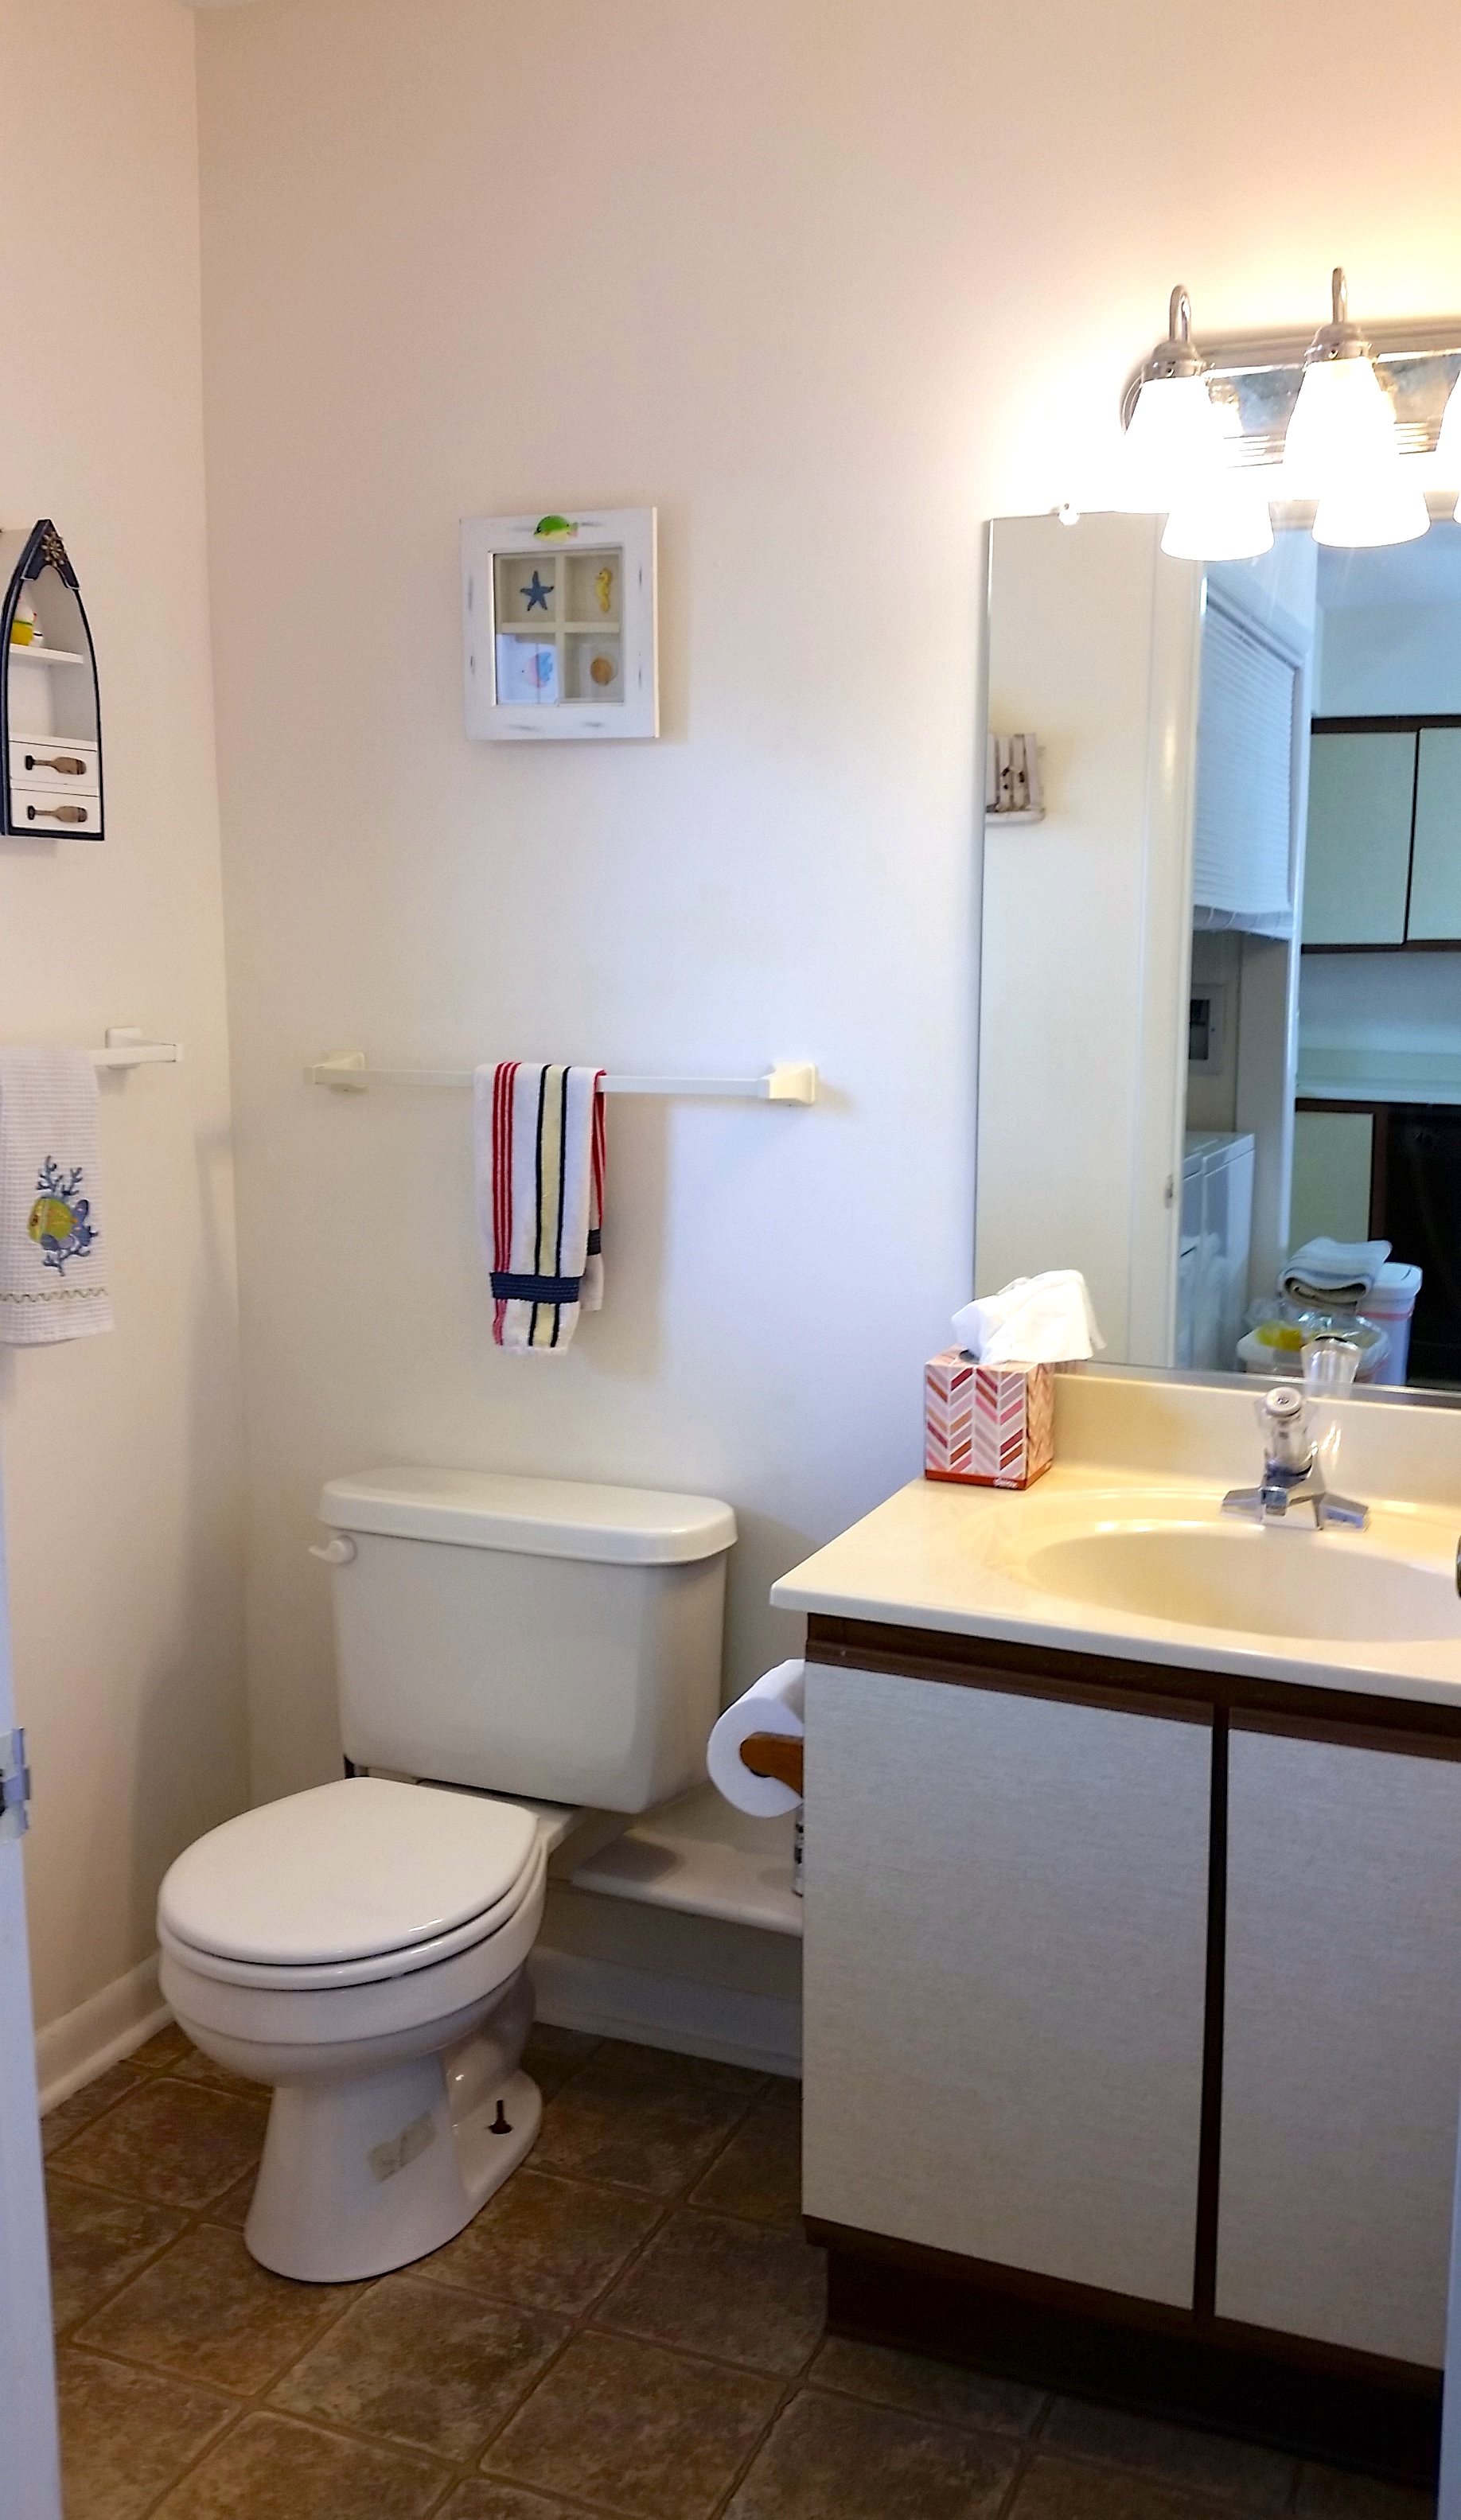 One of the 2.5 Bathrooms